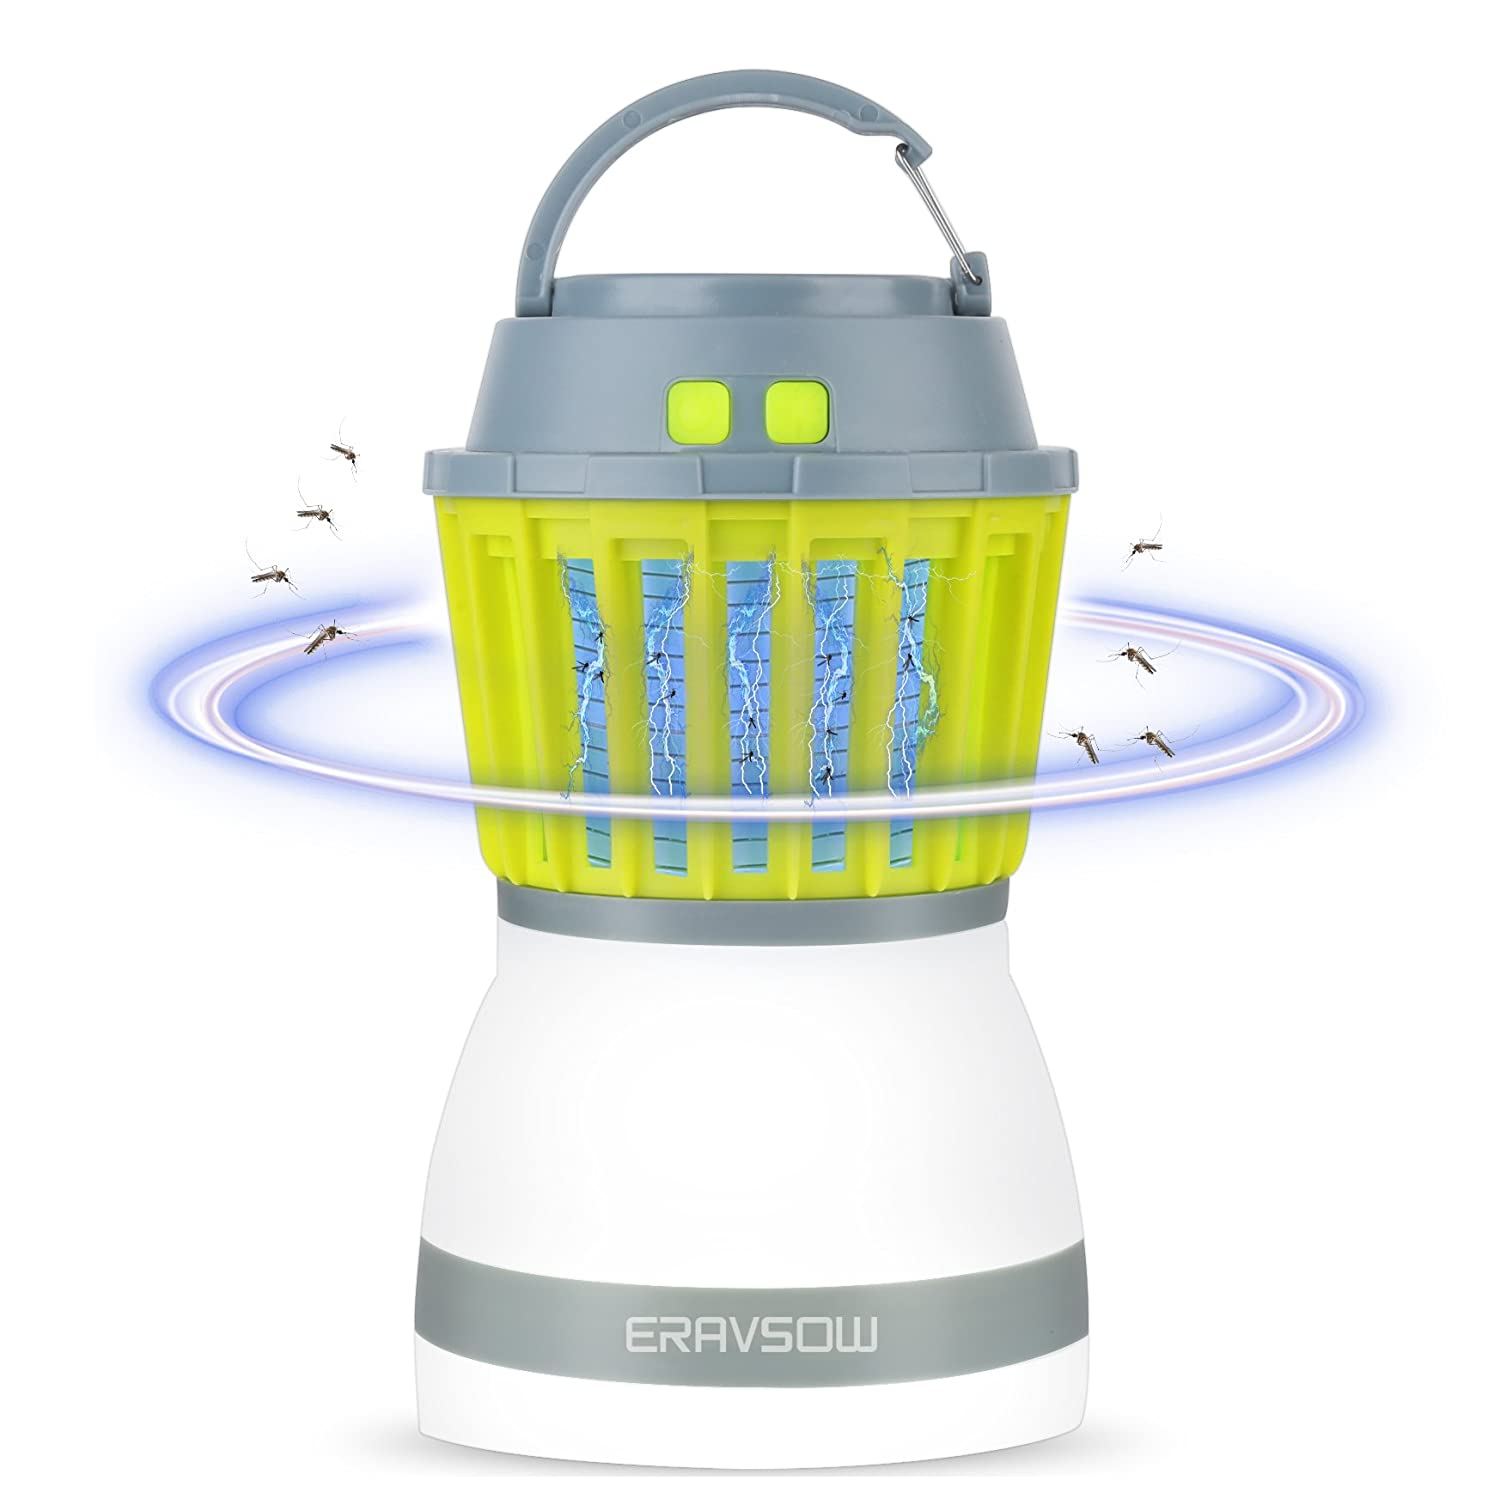 ERAVSOW Bug Zapper & LED Camping Lantern 2-in-1, Waterproof Rechargeable Mosquito Killer, Portable Compact Camping Gear for Home & Outdoors.